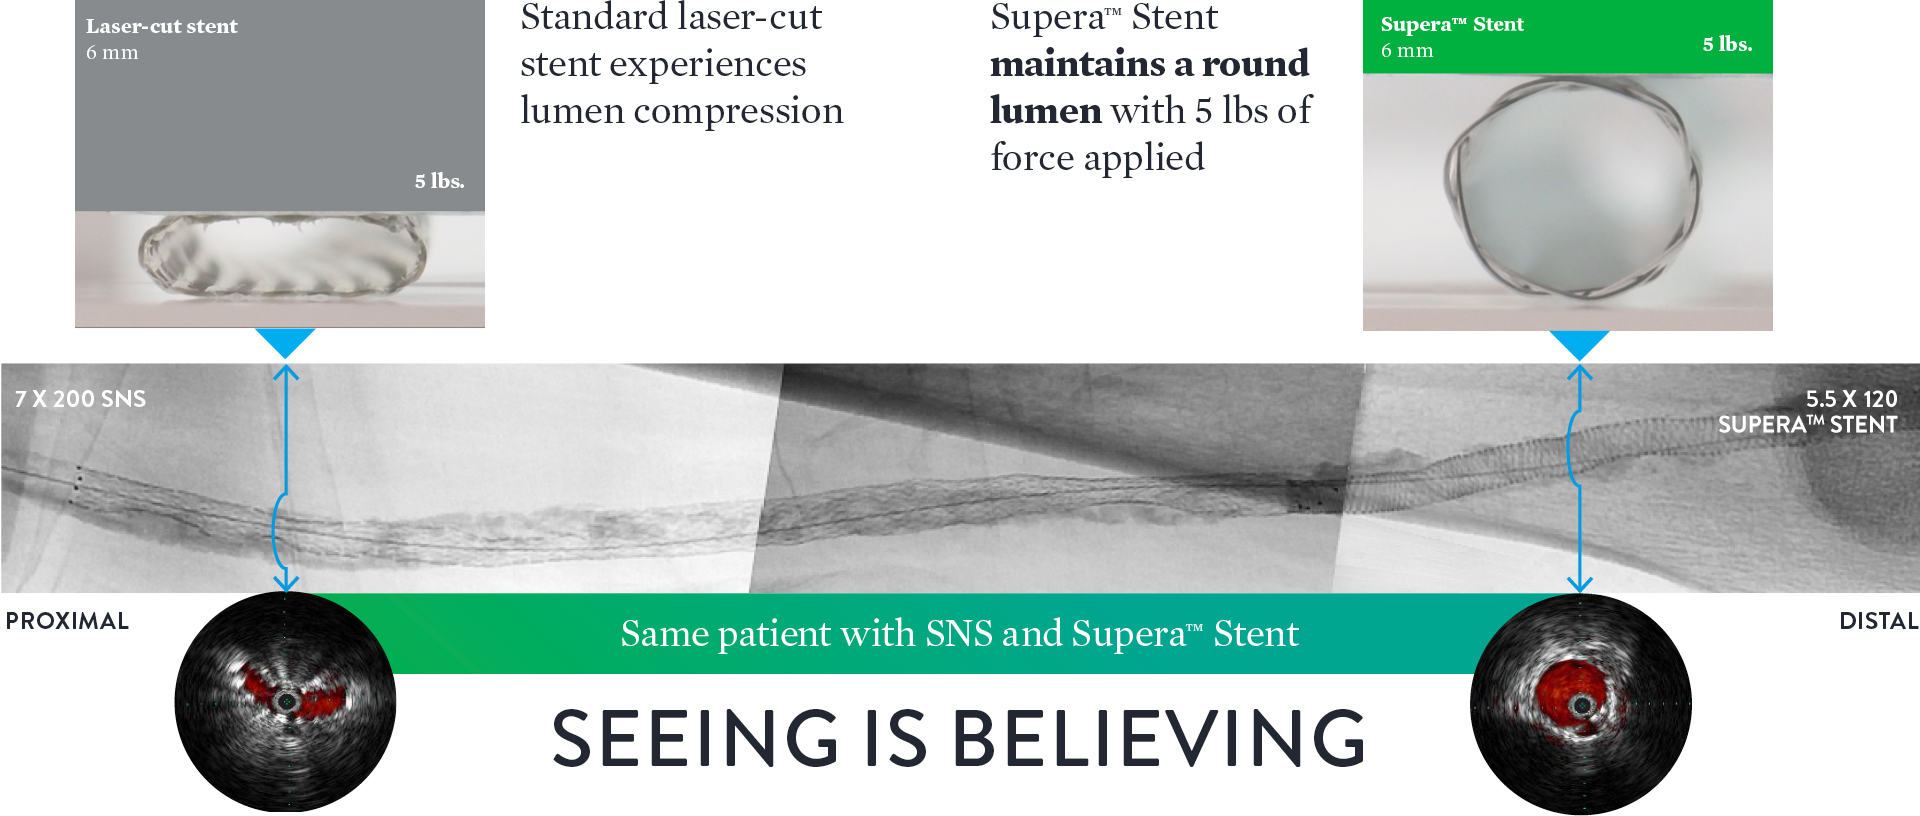 Supera™ Stent offers unparalleled compression resistance